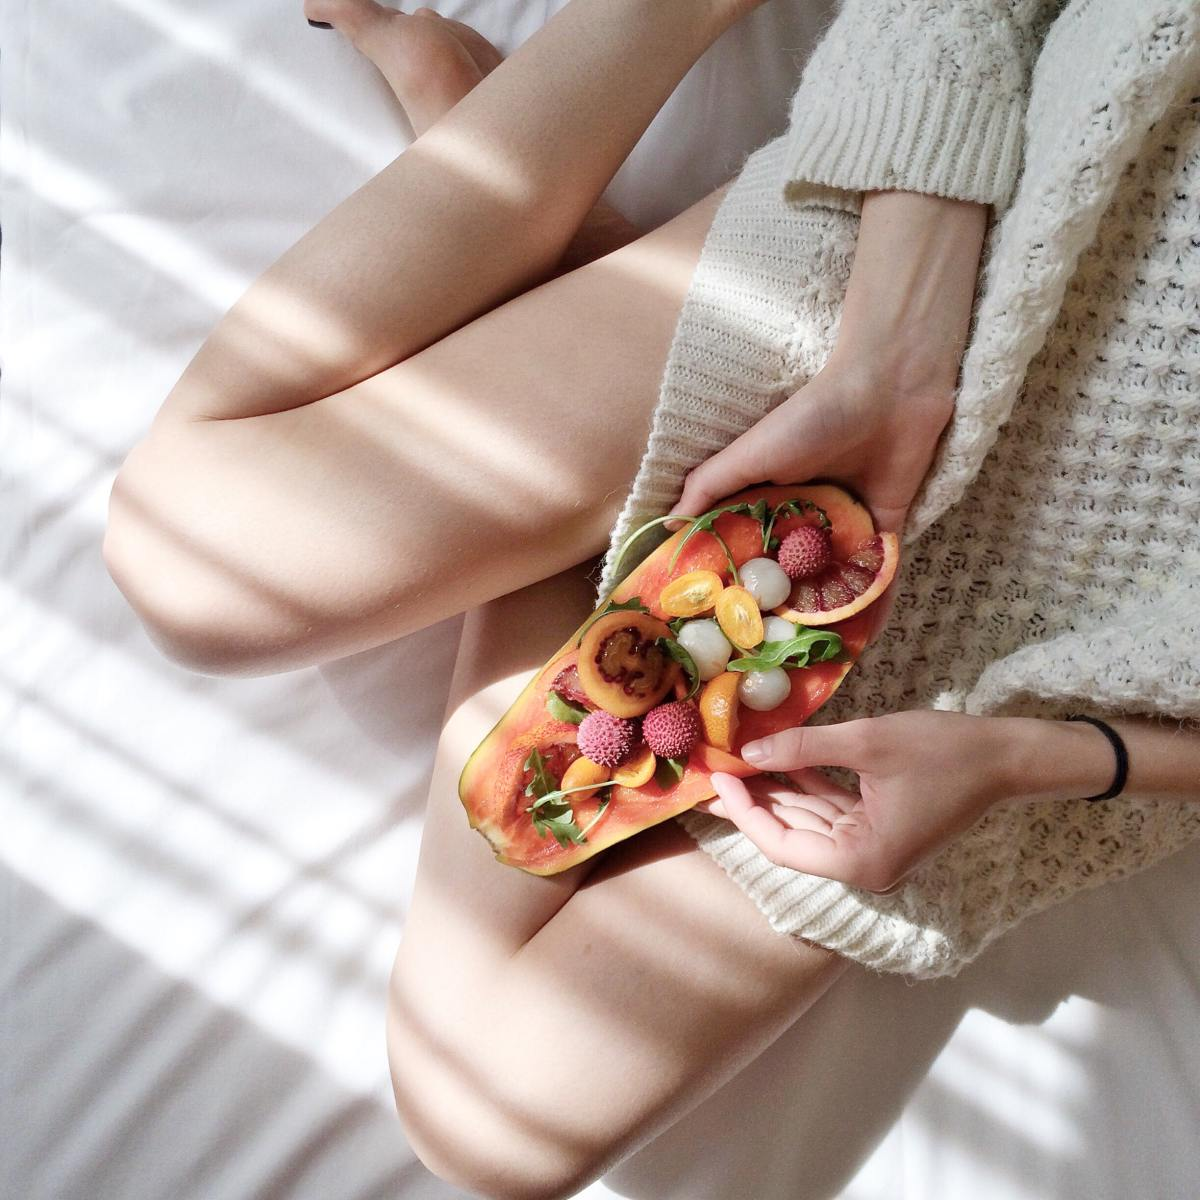 person-holding-papaya-fruit-on-bed-1030870 (1)